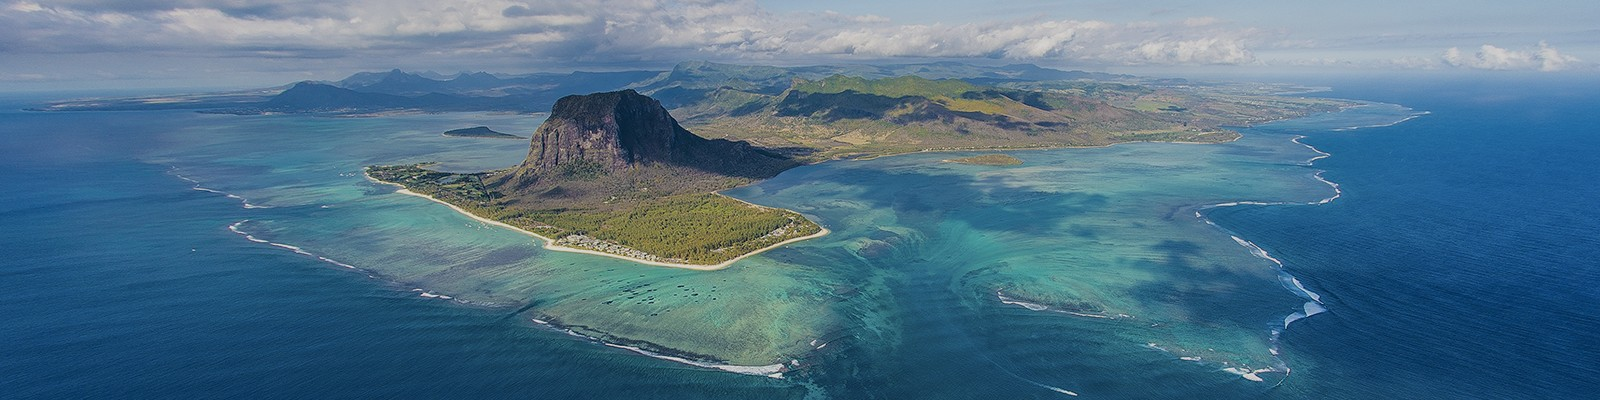 mauritius honeymoon packages header